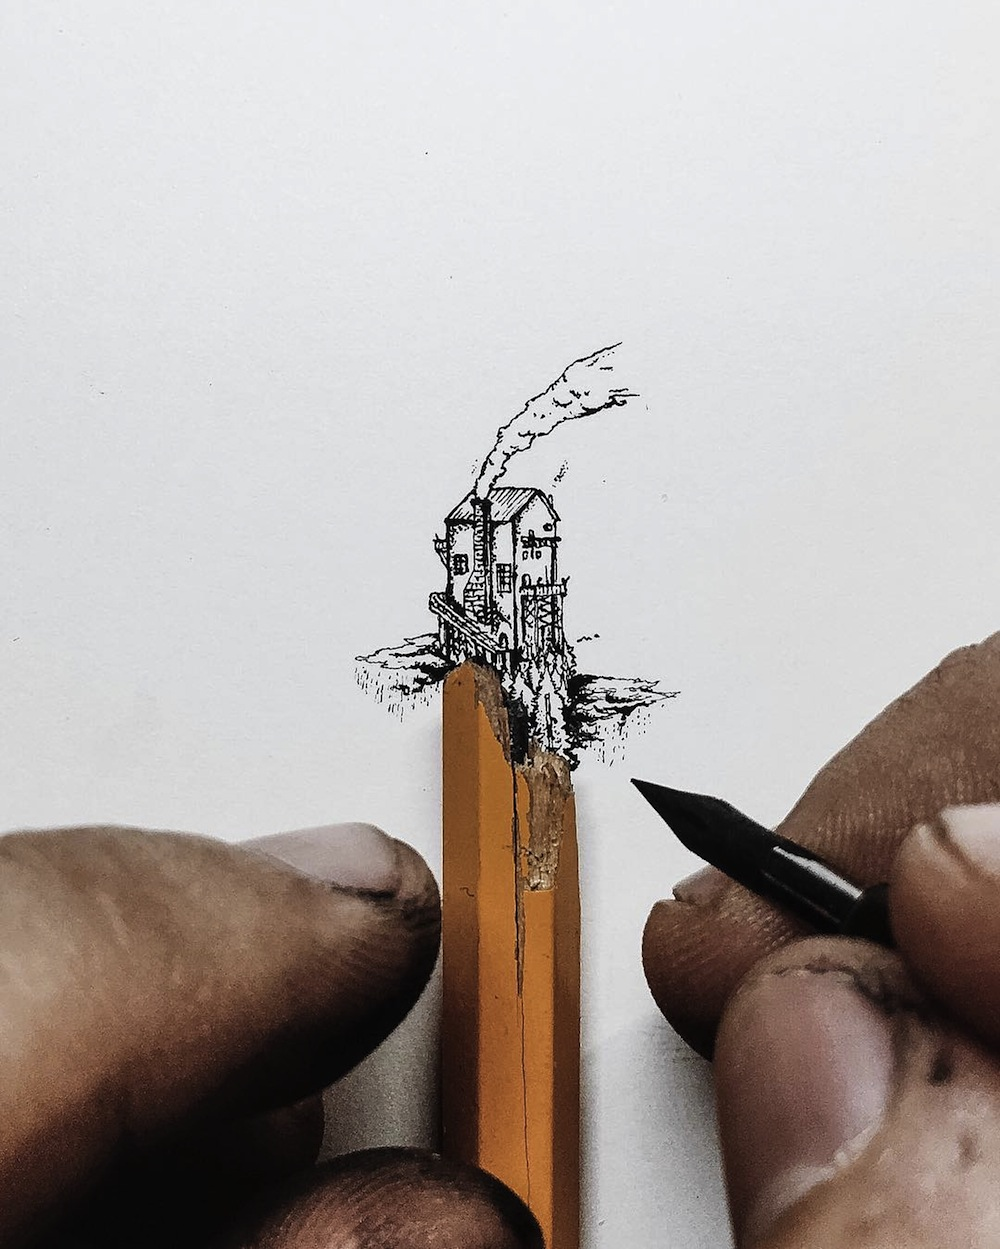 Tiny Ink Drawings Scaled to the Size of Pencils, Fingers, and Matchsticks by Christian Watson